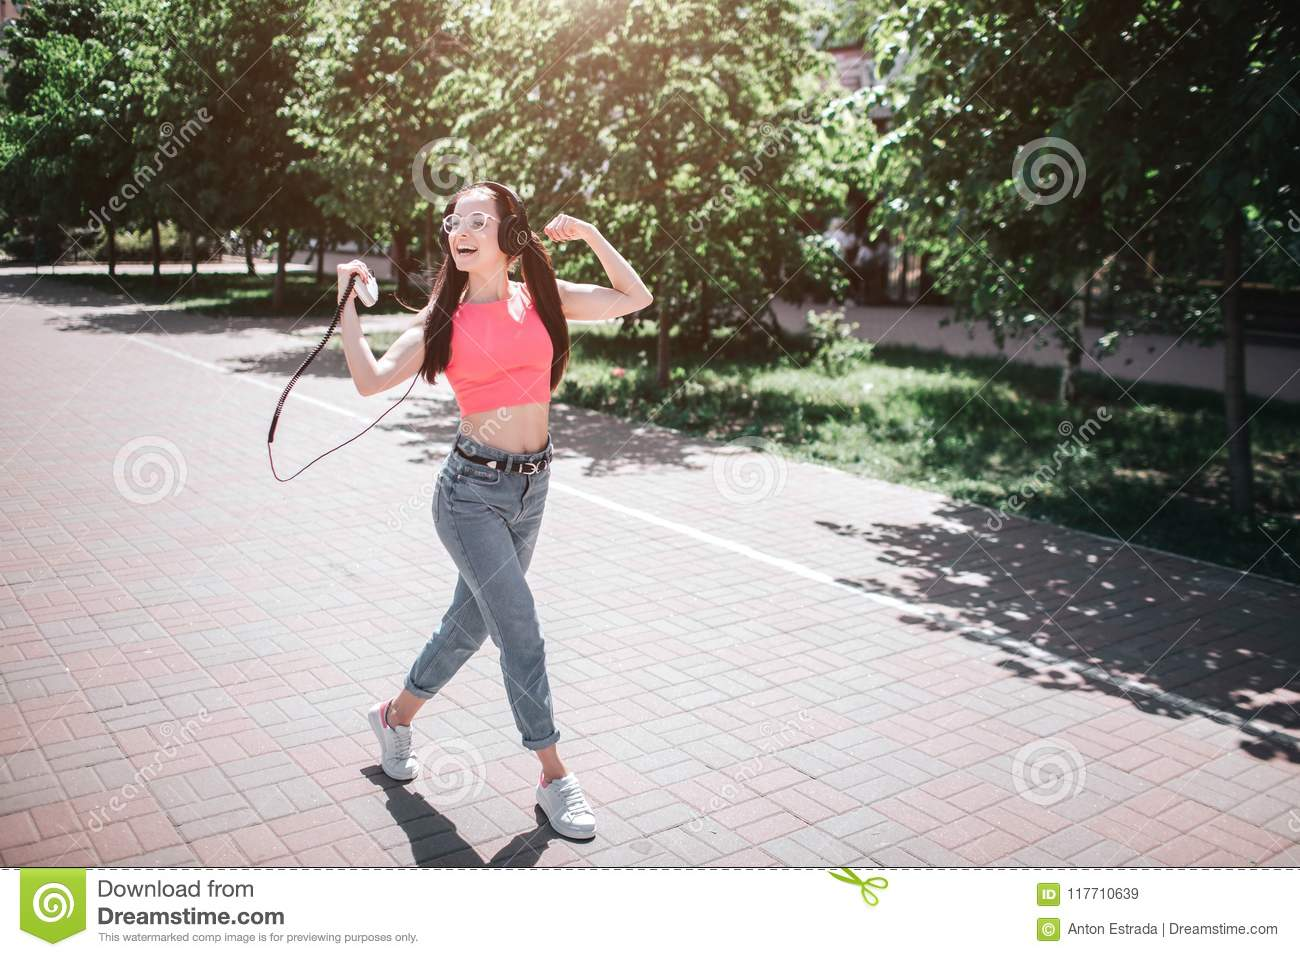 Delightful and happy person is dancing on street. She is listening to music through headphones and using player for that